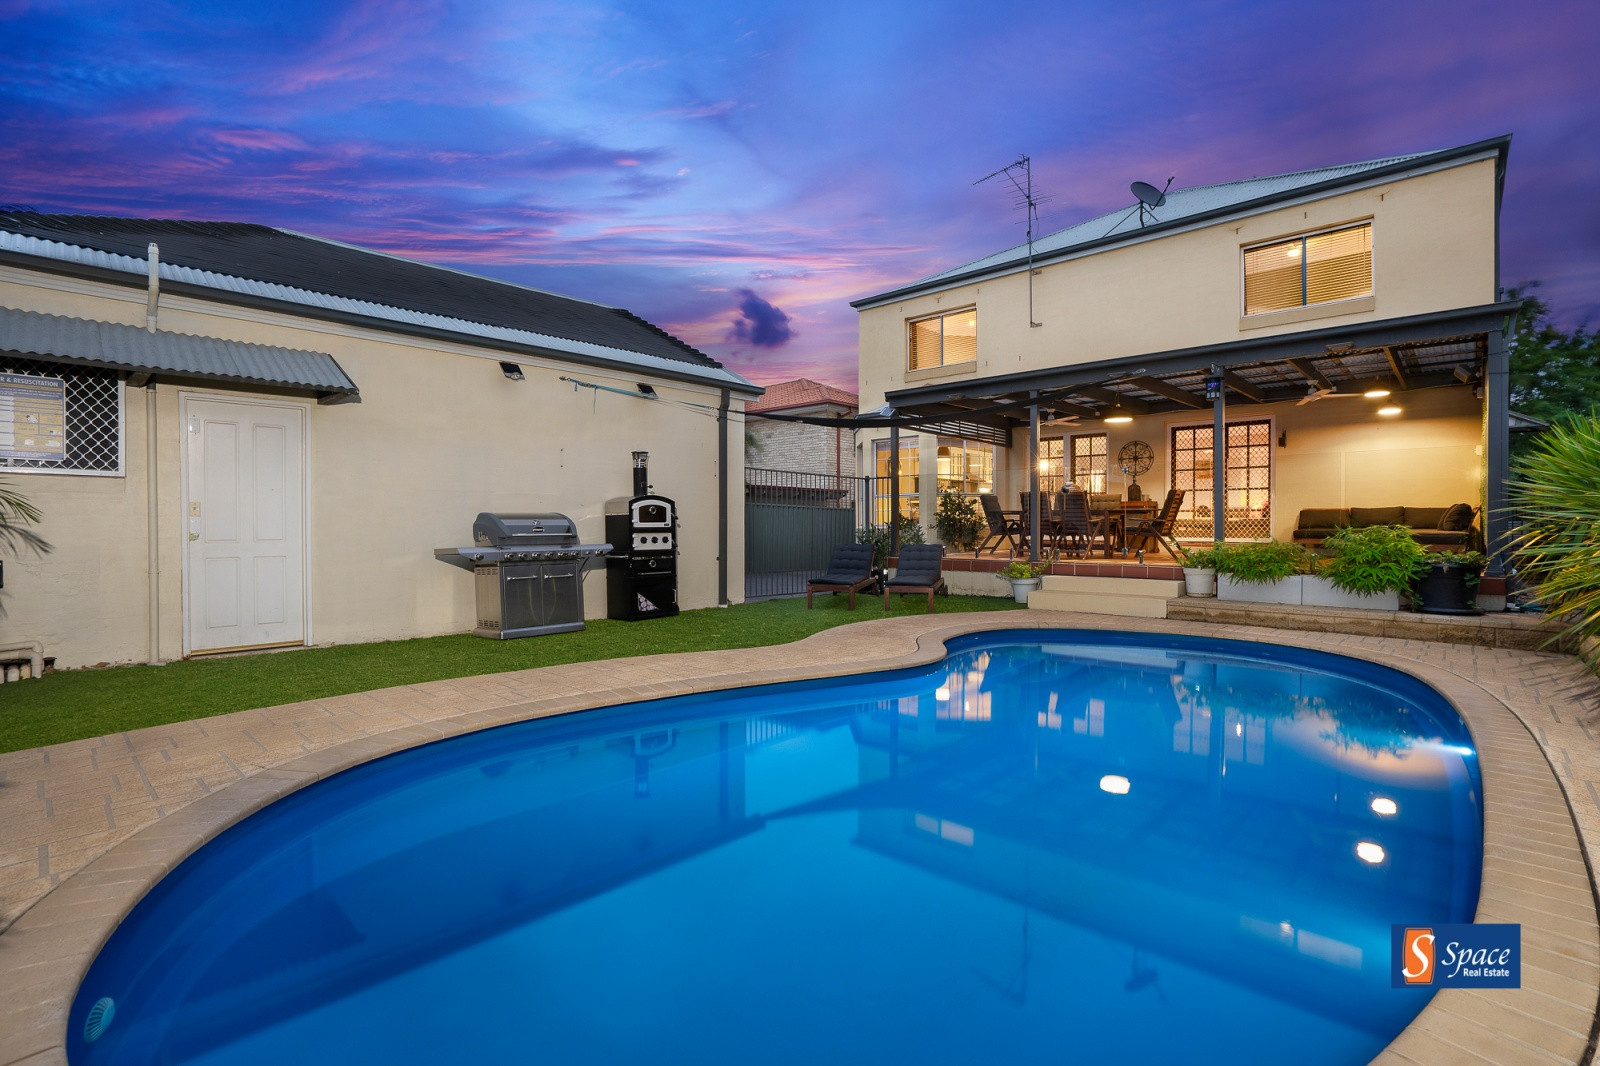 14 Kensington Drive, Harrington Park, NSW, 5 Bedrooms Bedrooms, ,2 BathroomsBathrooms,House,Sold,Kensington Drive,1589